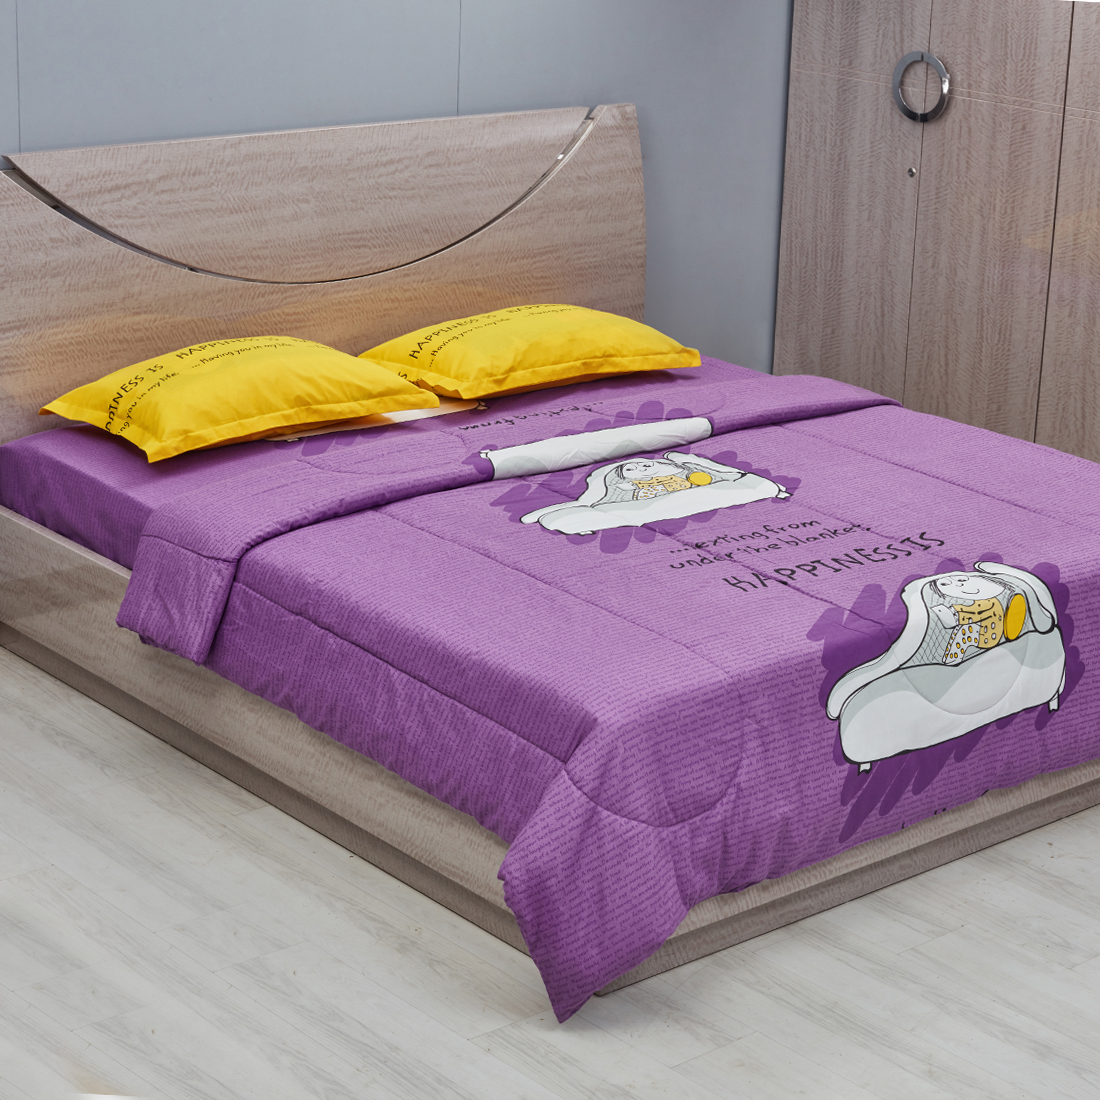 Happiness Double Comforter Purple Cotton Comforters in Purple Colour by Portico